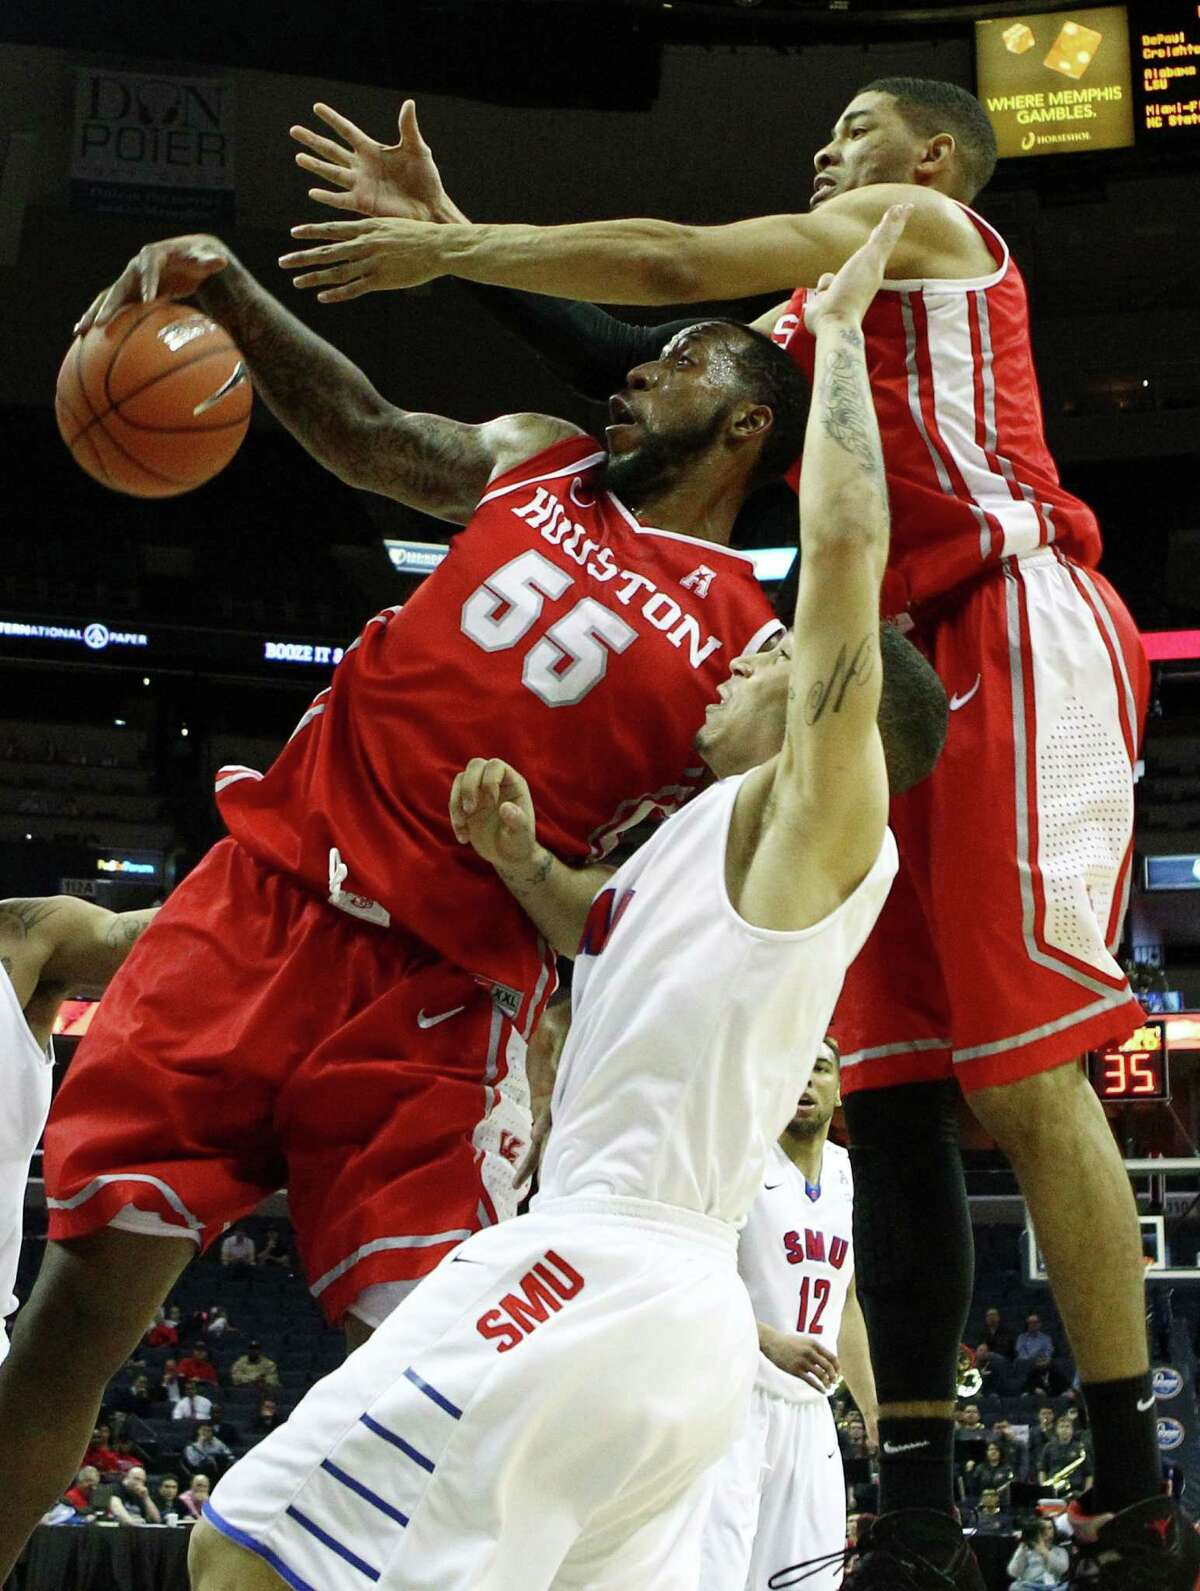 Houston Cougars forward J.J. Richardson (left), SMU Mustangs guard Nic Moore (center) and Houston Cougars guard LeRon Barnes (right) battle for a rebound during the quaterfinals of the American Athletic Conference tournament at FedExForum, March 13, 2014 in Memphis, Tenn. (Mike Brown/The Commercial Appeal/MCT)